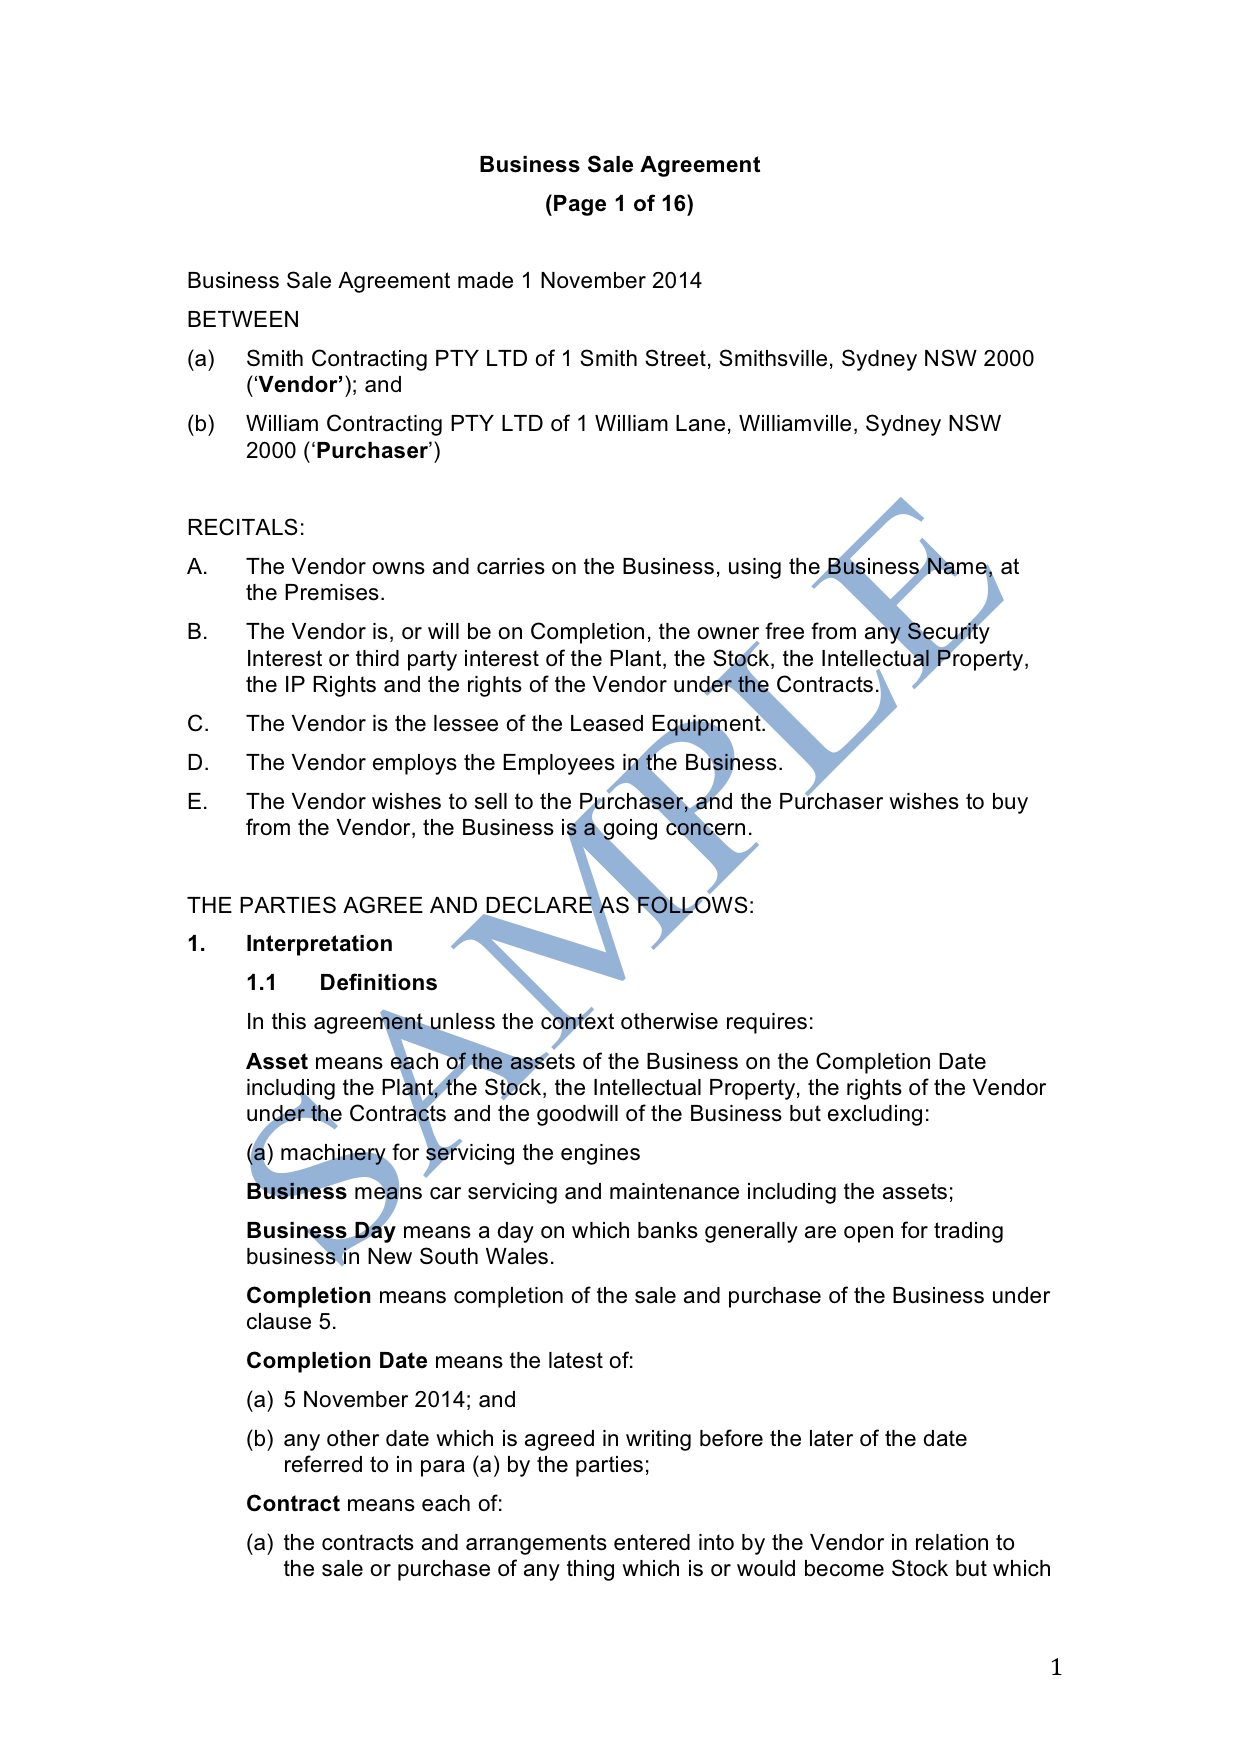 Business Sale Agreement Sample LawPath – Free Business Purchase Agreement